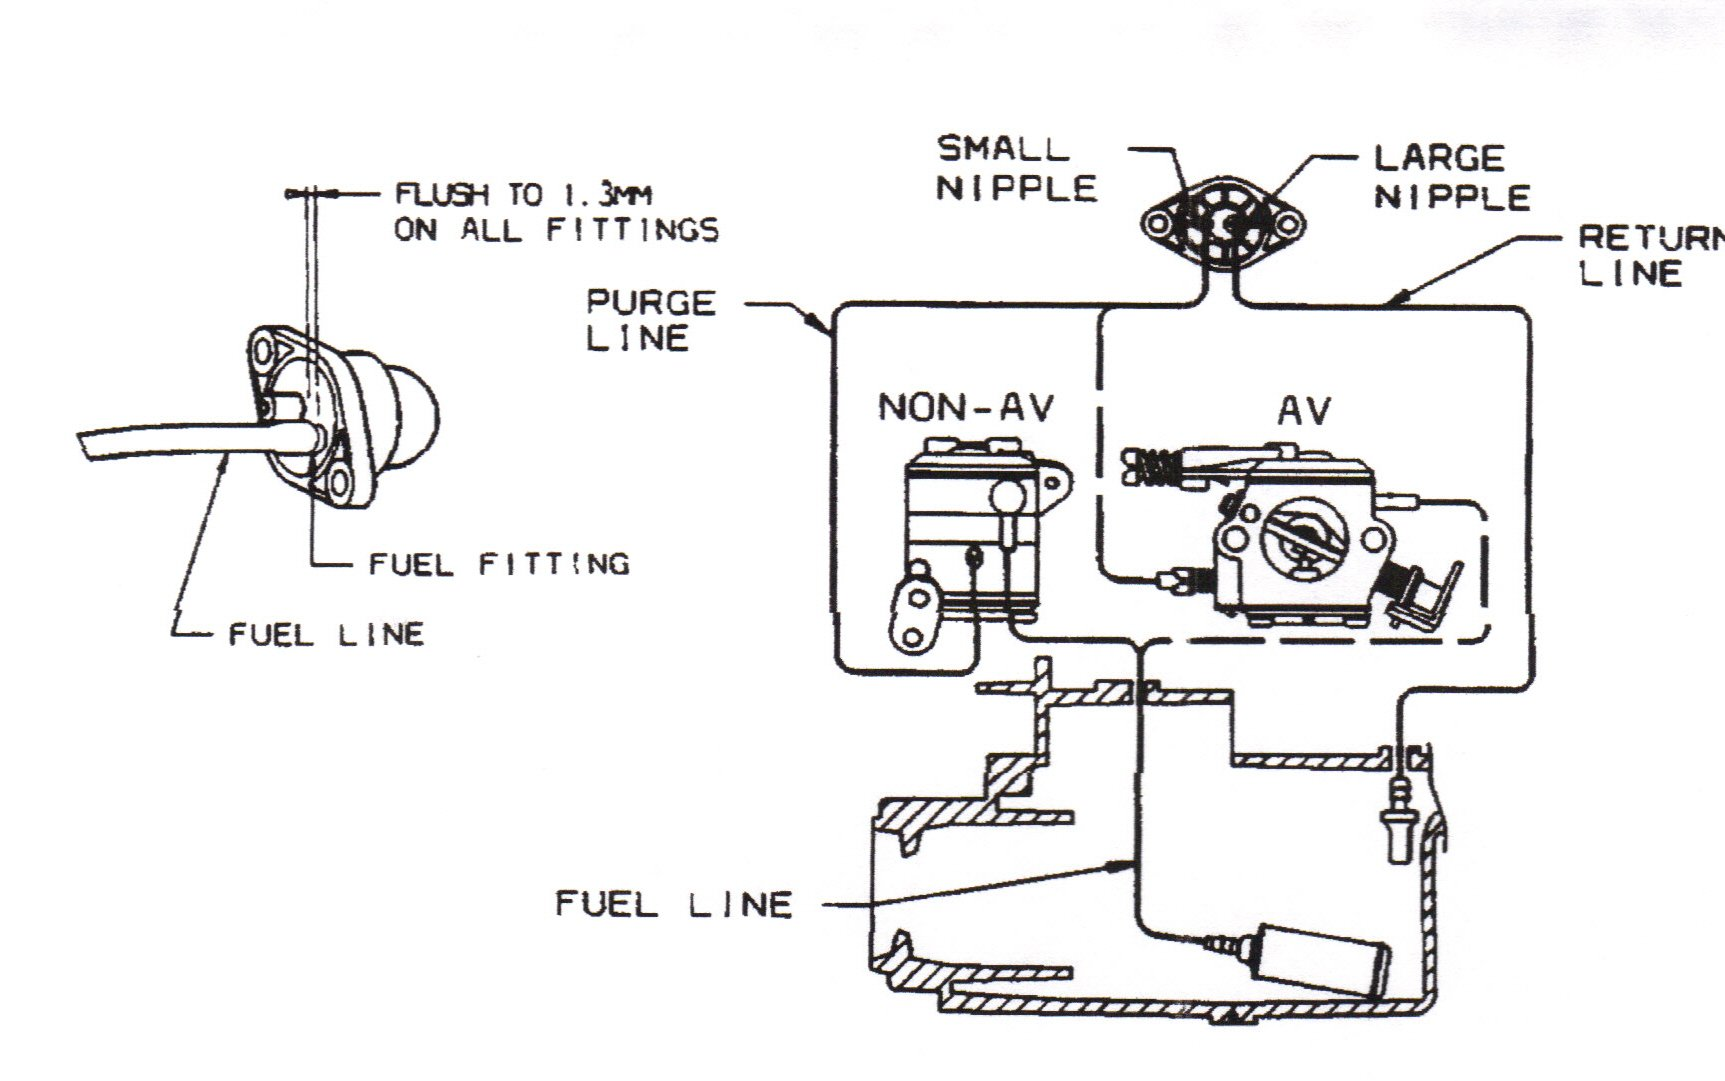 I am looking for a fuel line diagram for ryobi bp 42 blower 22e127db 861a 4df2 bb8f 12135f5c8e47fuel primerg cheapraybanclubmaster Image collections